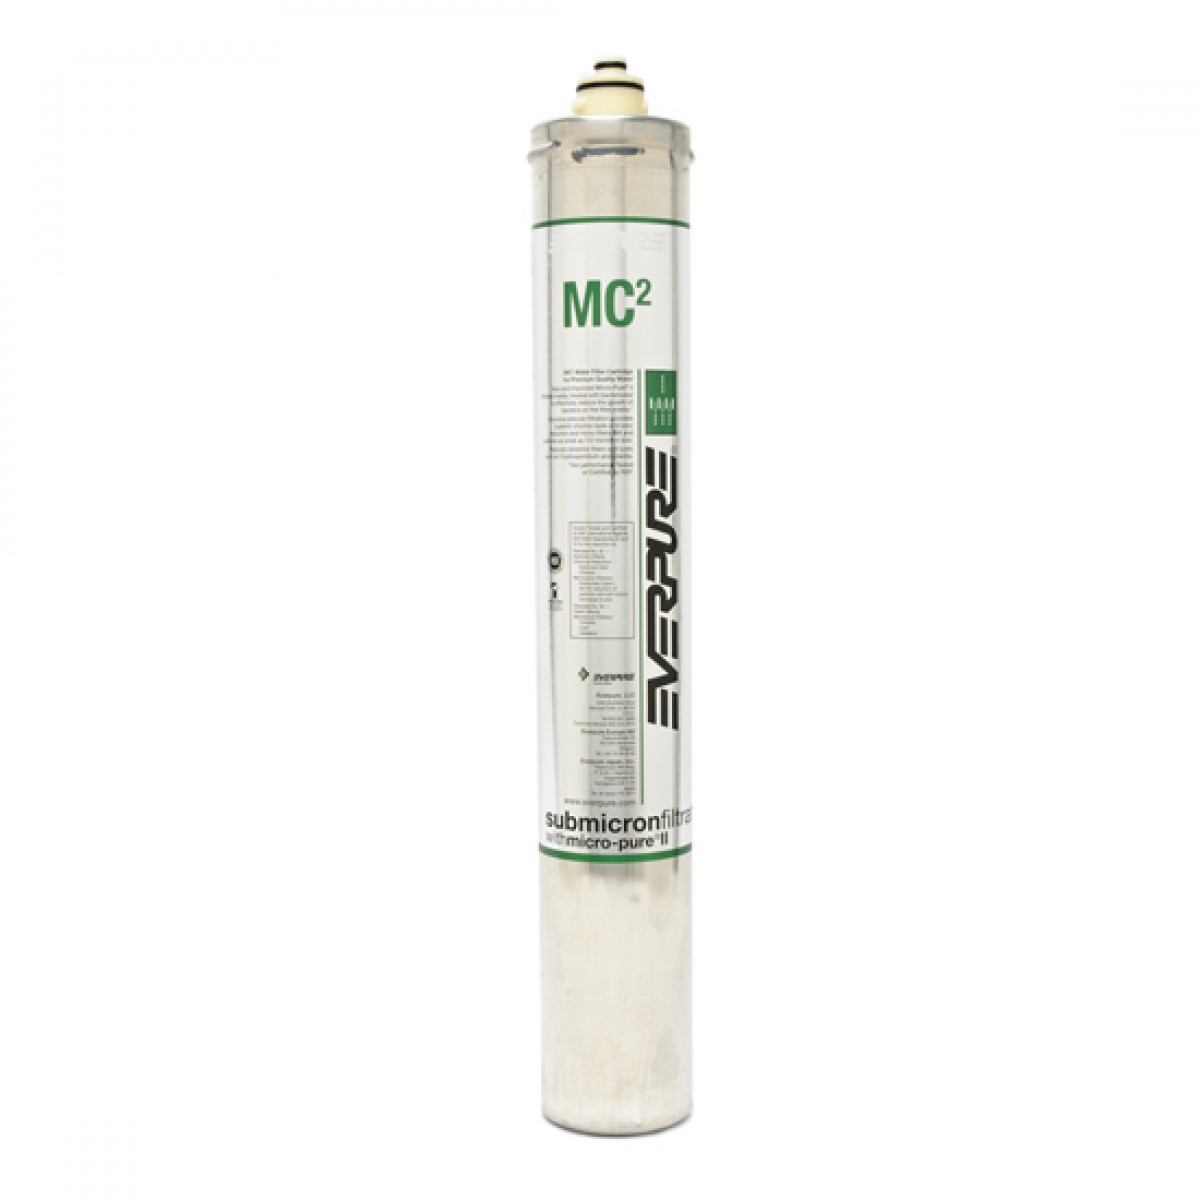 Everpure mc2 ev9612 56 replacement filter cartridge for Everpure water treatment system